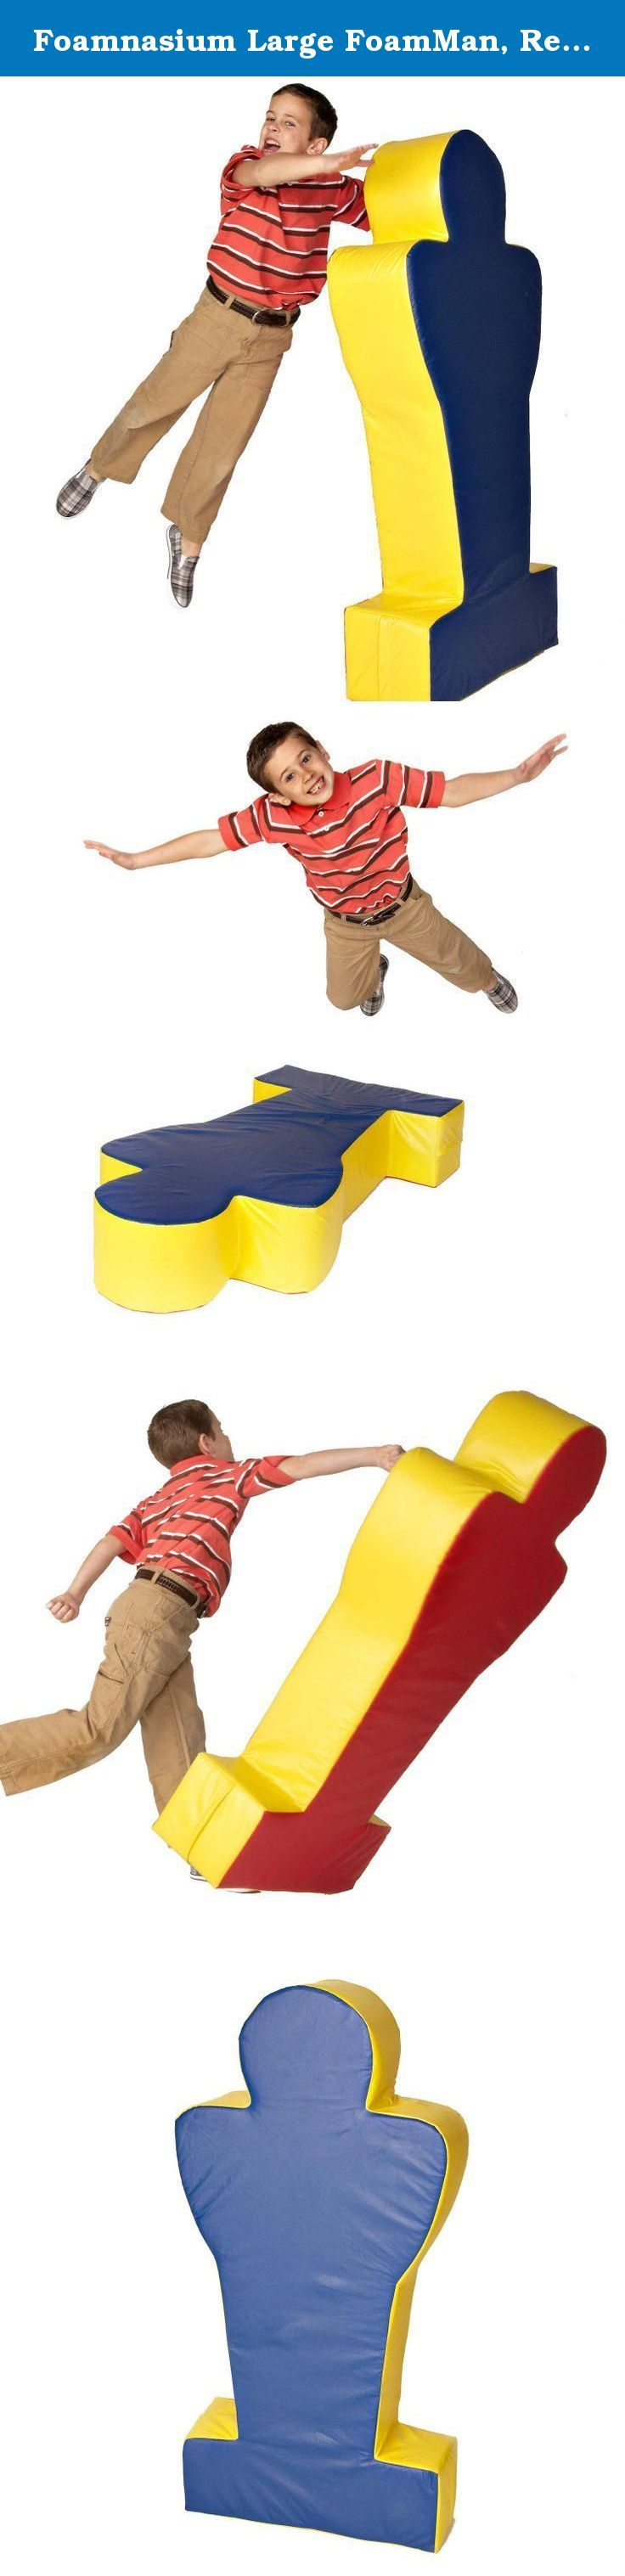 Foamnasium Large FoamMan, Red/Blue/Yellow. If your preschooler likes to horse around, get her a Foamnasium FoamMan! FoamMan is a tackling dummy, a boxing opponent, a wrestler to pin down—he's the best way to play rough without getting hurt. He's made of tough polyurethane foam that's durable enough to stand up to hours and hours of play. The flame-retardant foam also contains antimicrobial protection, so it won't grow mold or bacteria if it gets wet. The brightly-colored vinyl exterior is...